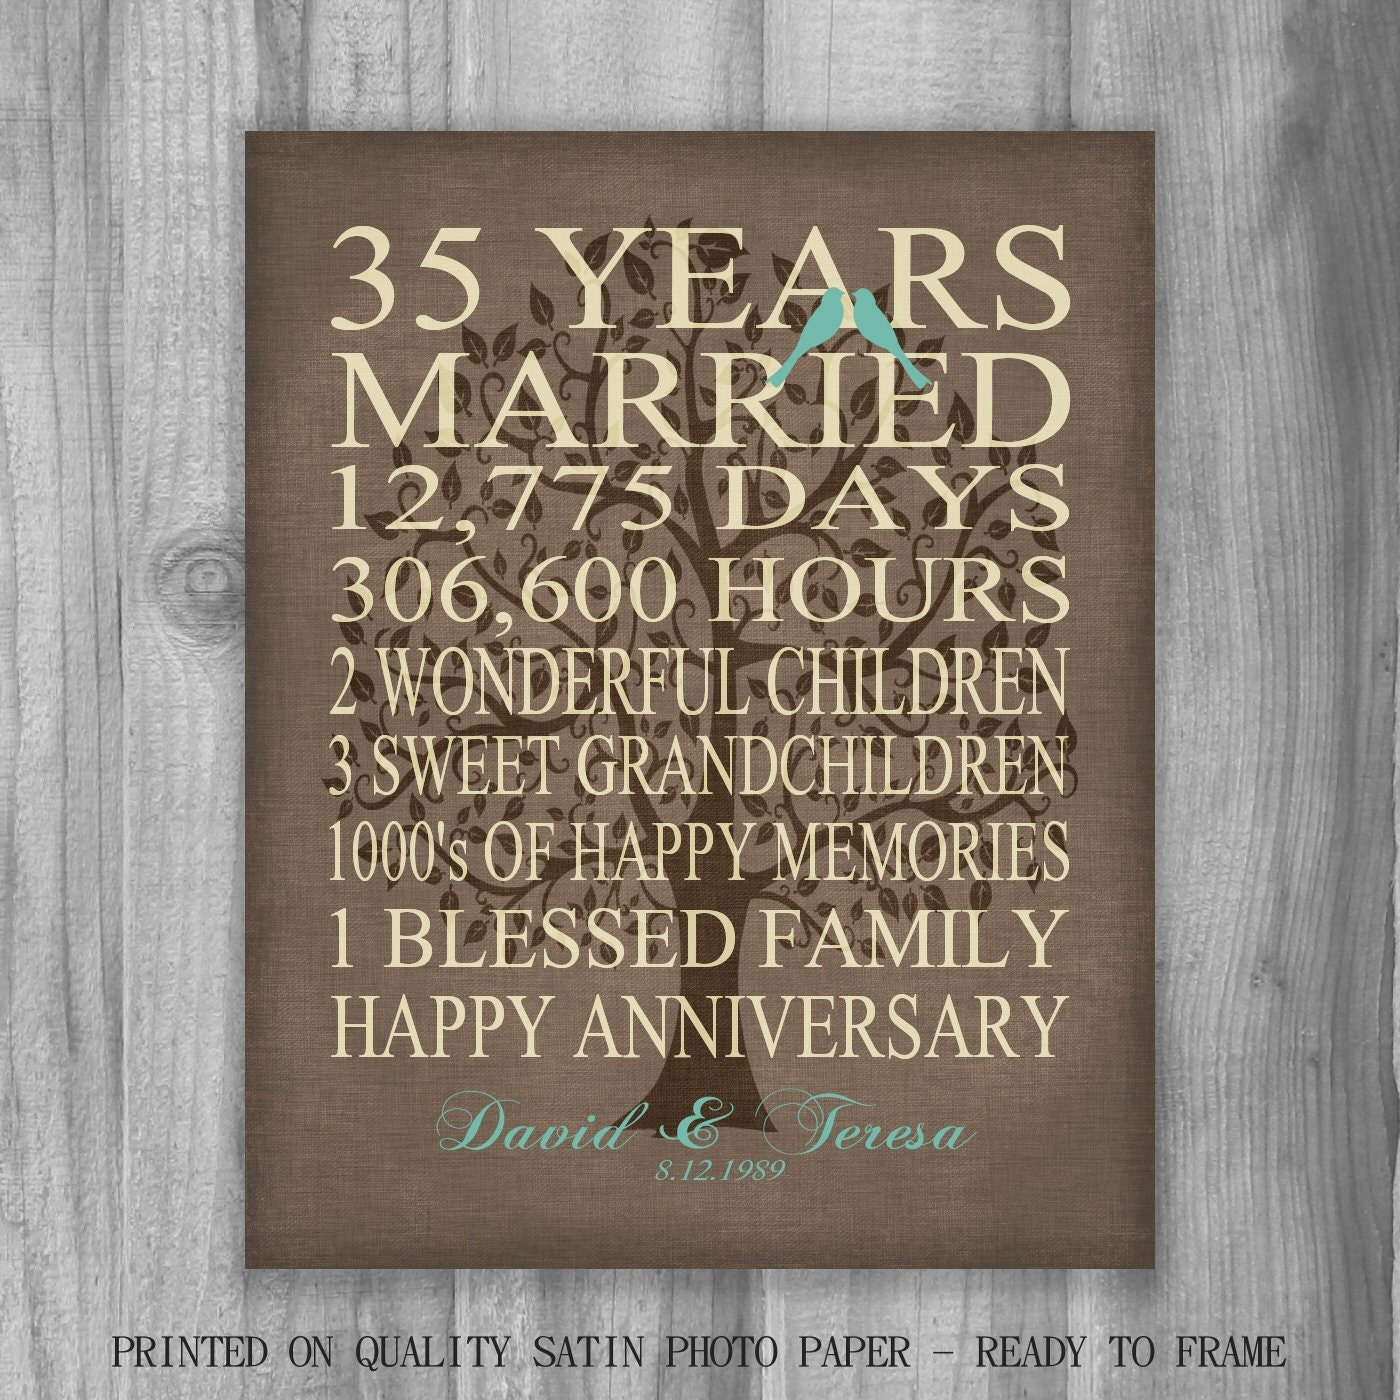 35th year anniversary gift rustic burlap look personalized